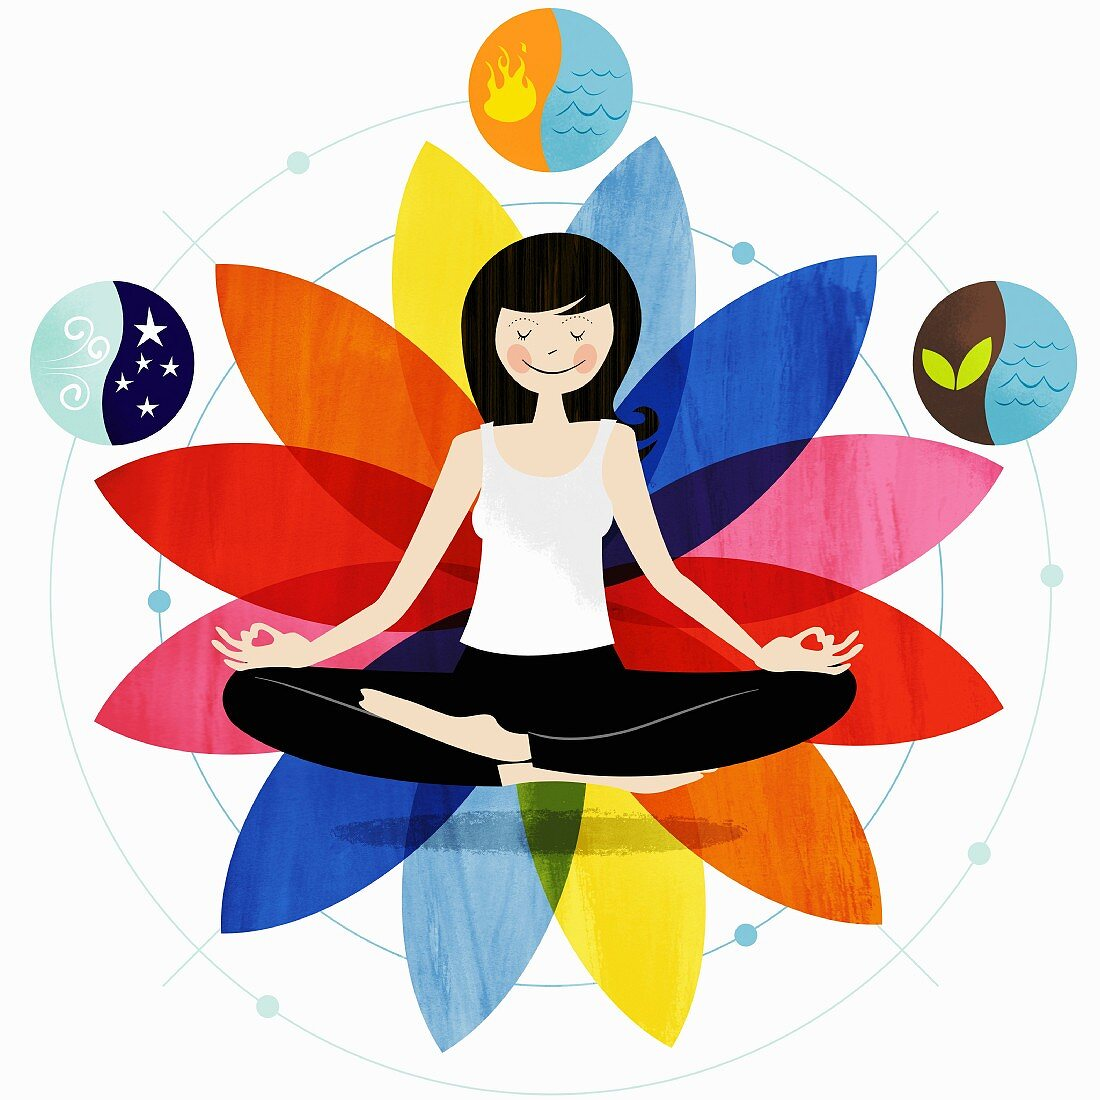 Smiling woman sitting in lotus position surrounded by harmony symbols